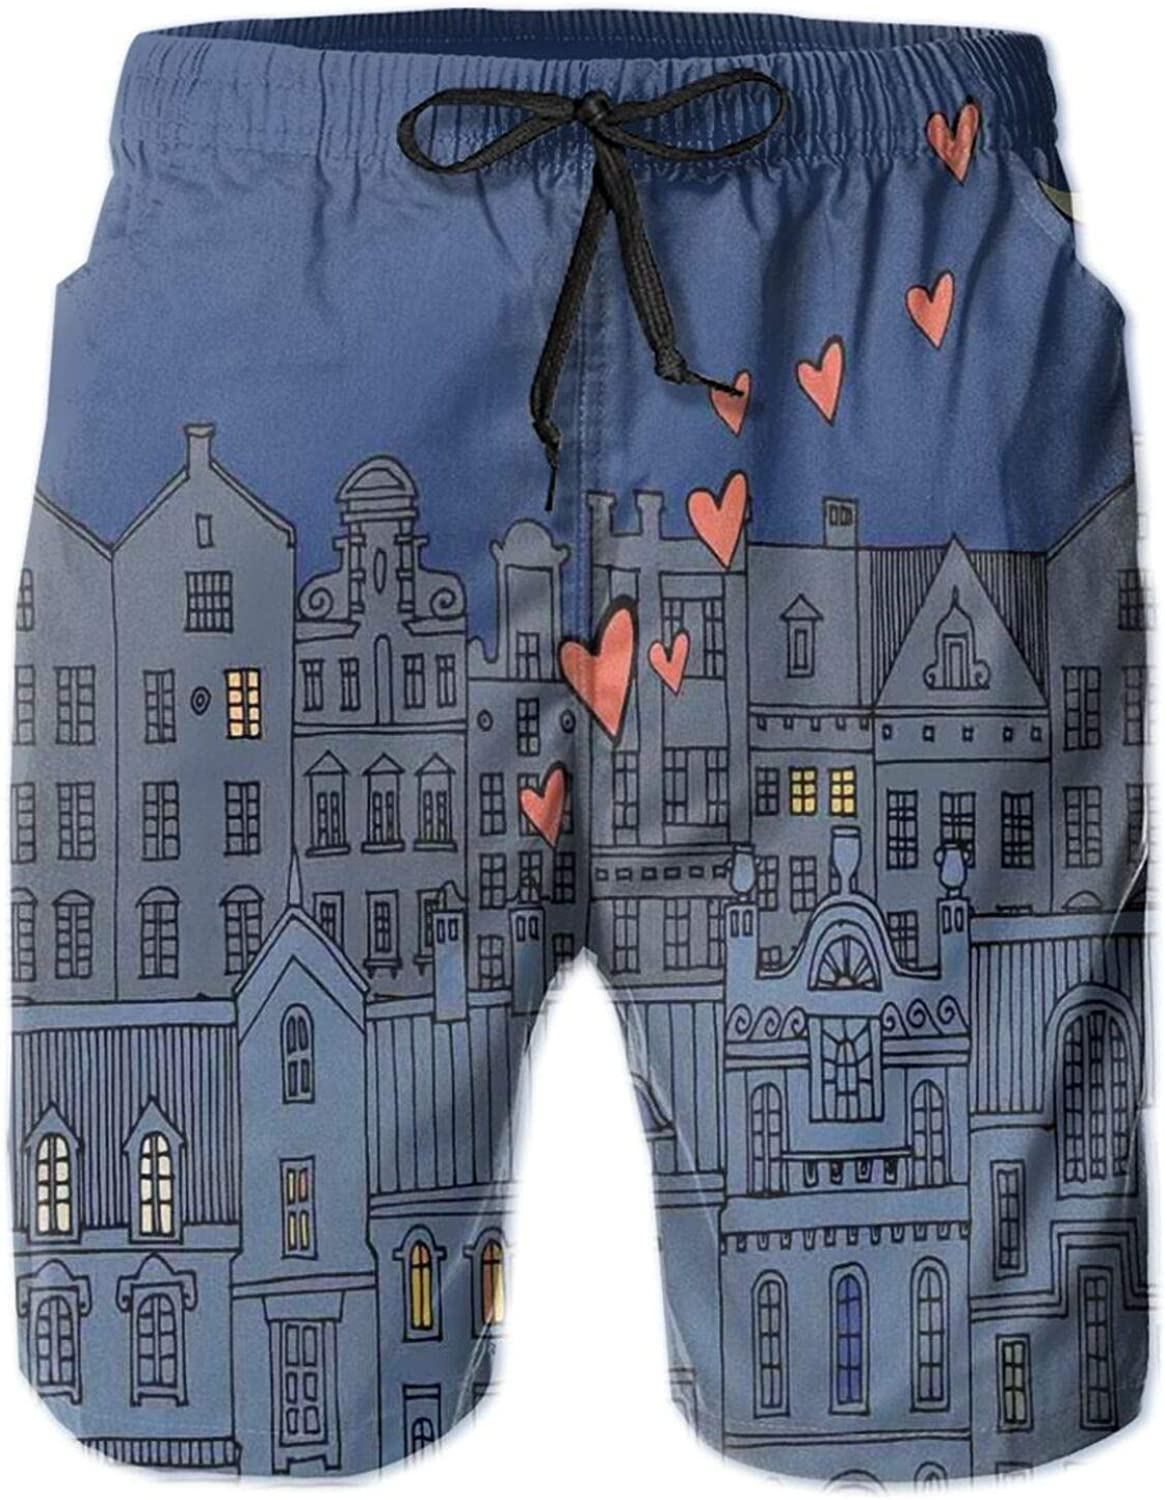 Street View of Antique City Artistic Hand Drawn Style Houses Hearts and Crescent Drawstring Waist Beach Shorts for Men Swim Trucks Board Shorts with Mesh Lining,L